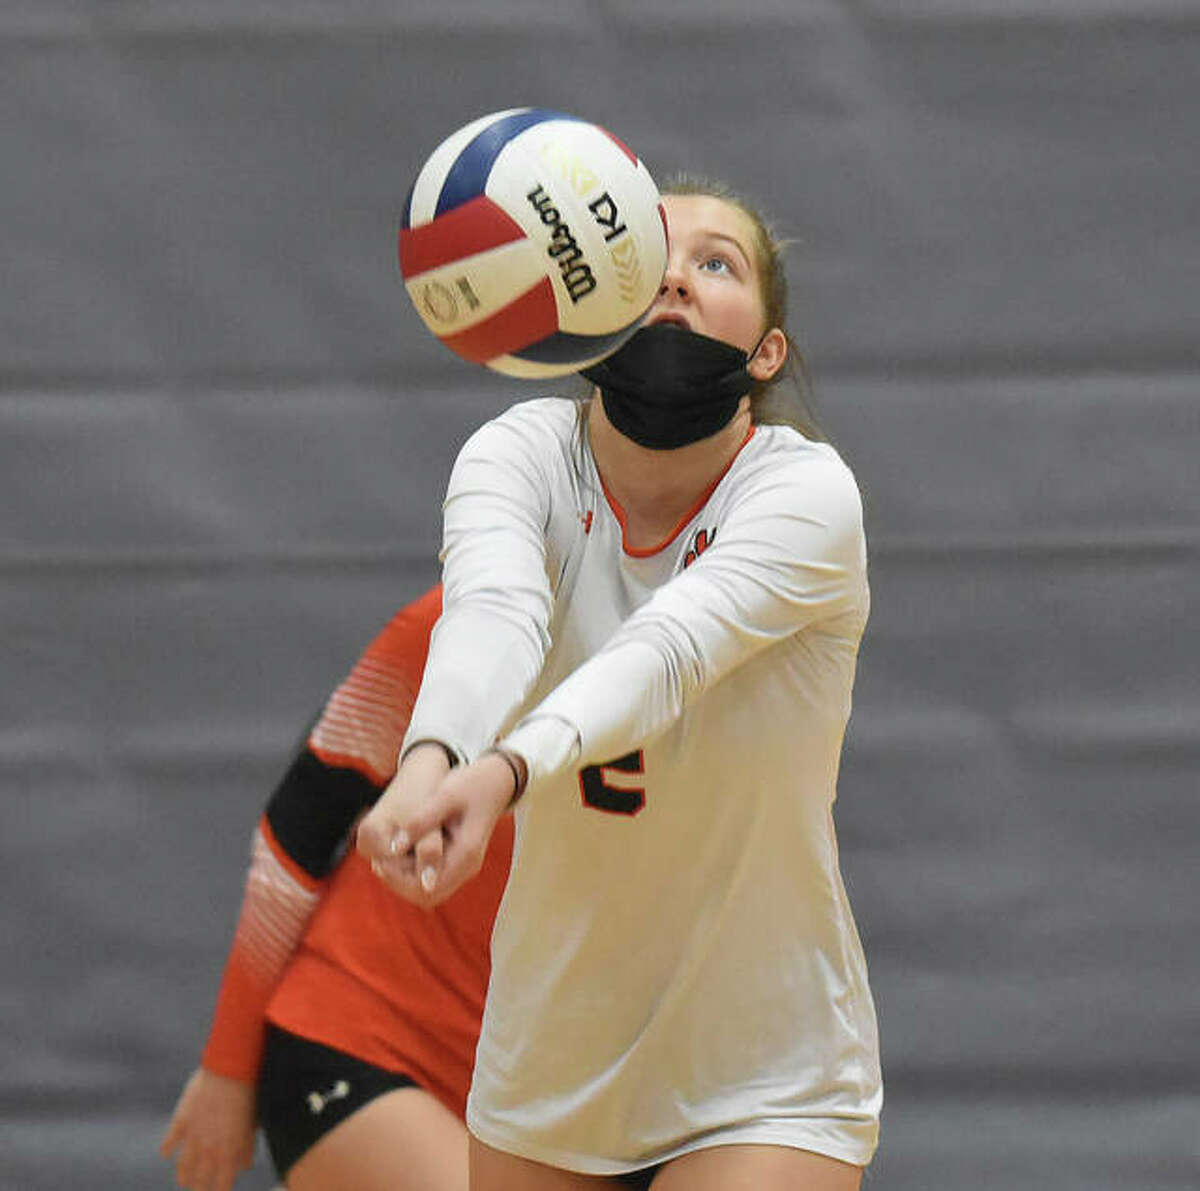 Edwardsville's Kaitlyn Conway keeps the volley alive during the second set against the Alton Redbirds on Tuesday in Alton.